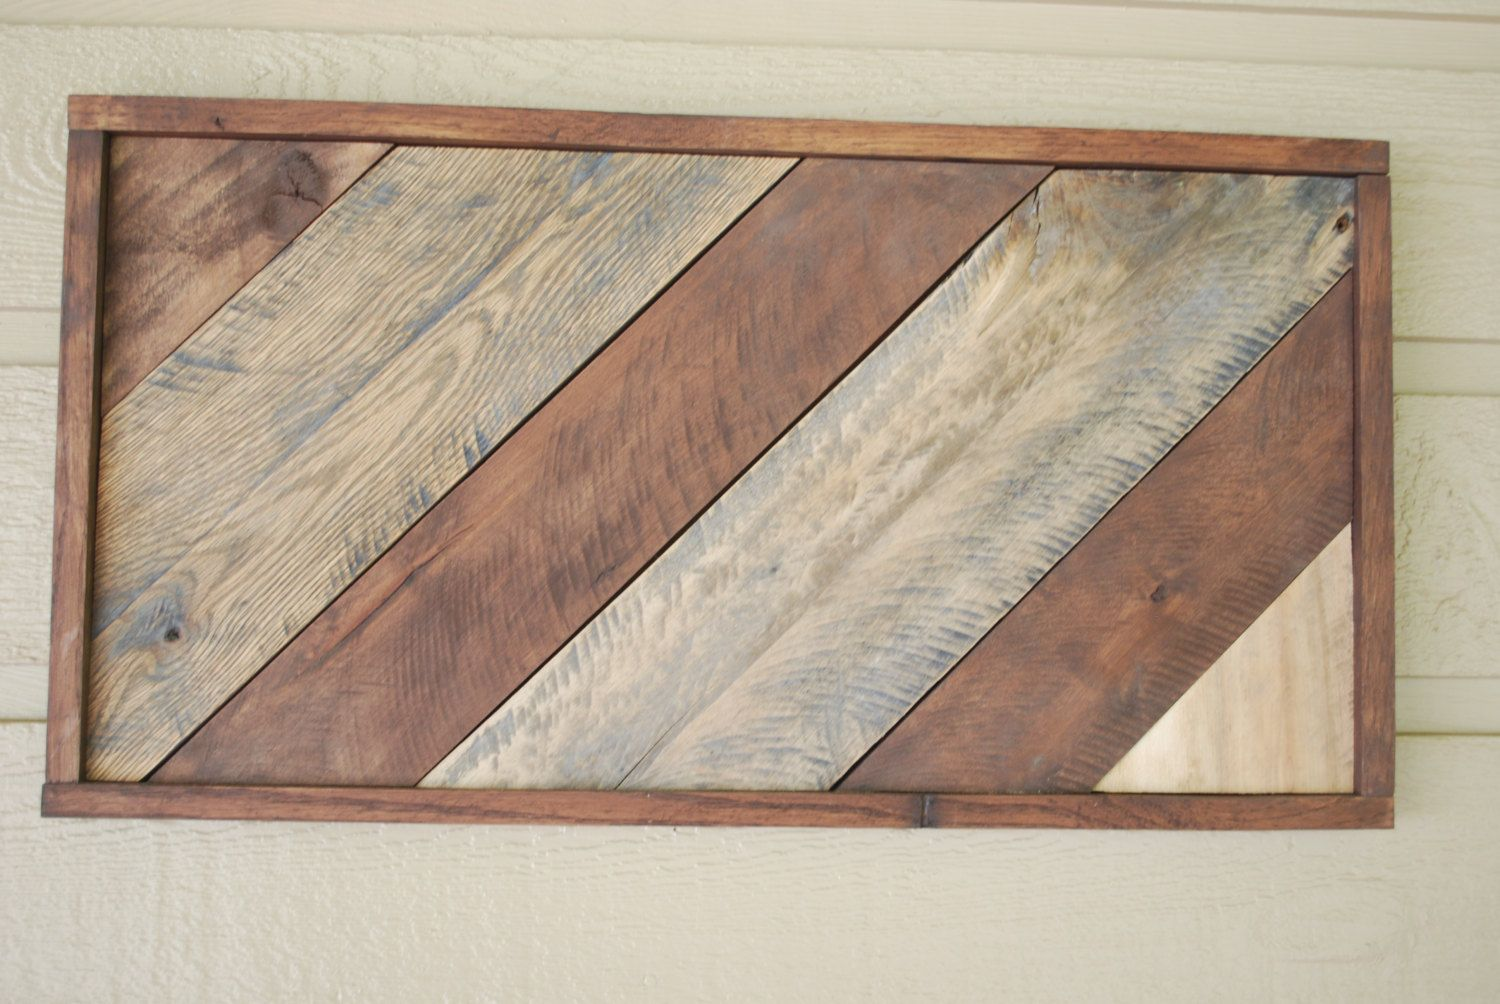 Rustic decorative wall art from pallet wood by ingrainedstudio